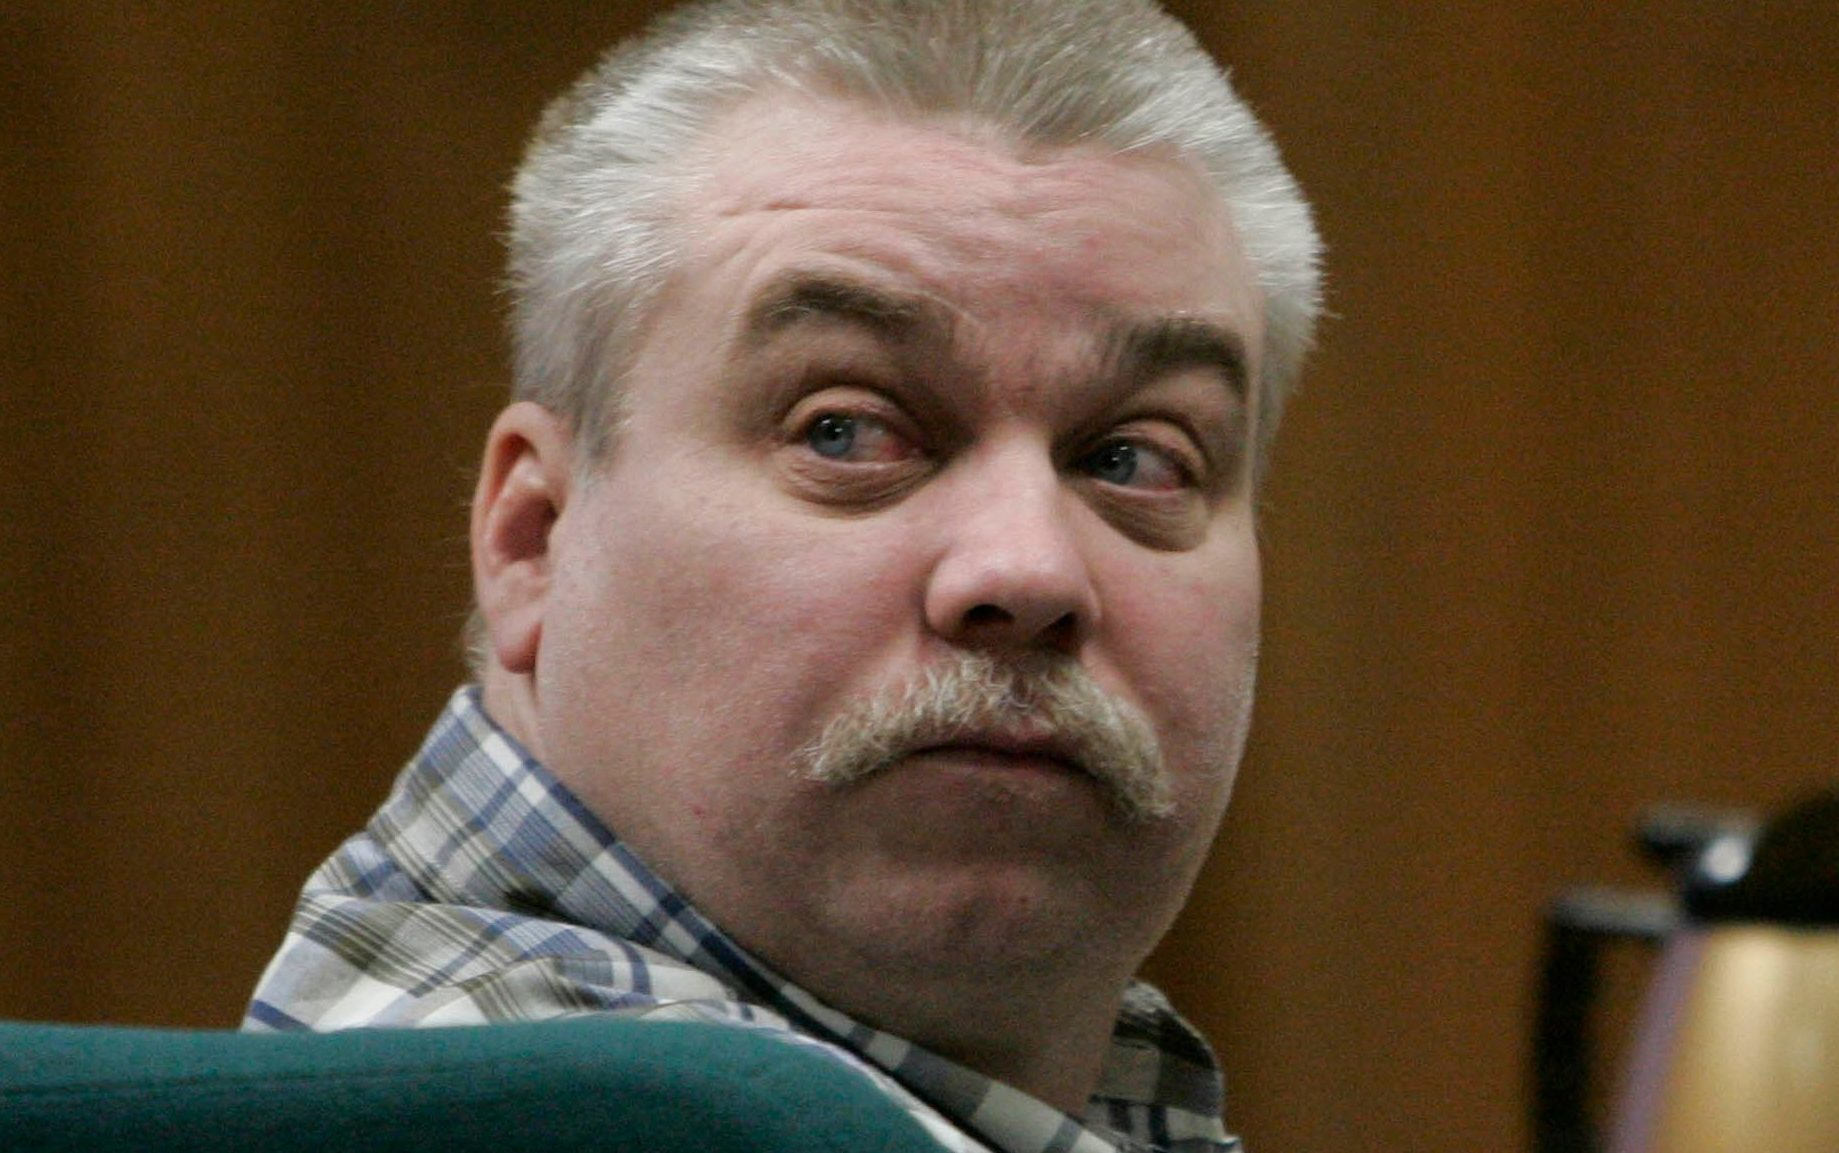 Steven Avery's case featured in Netflix's Making A Murderer - True crime shows have become staples of the entertainment industry